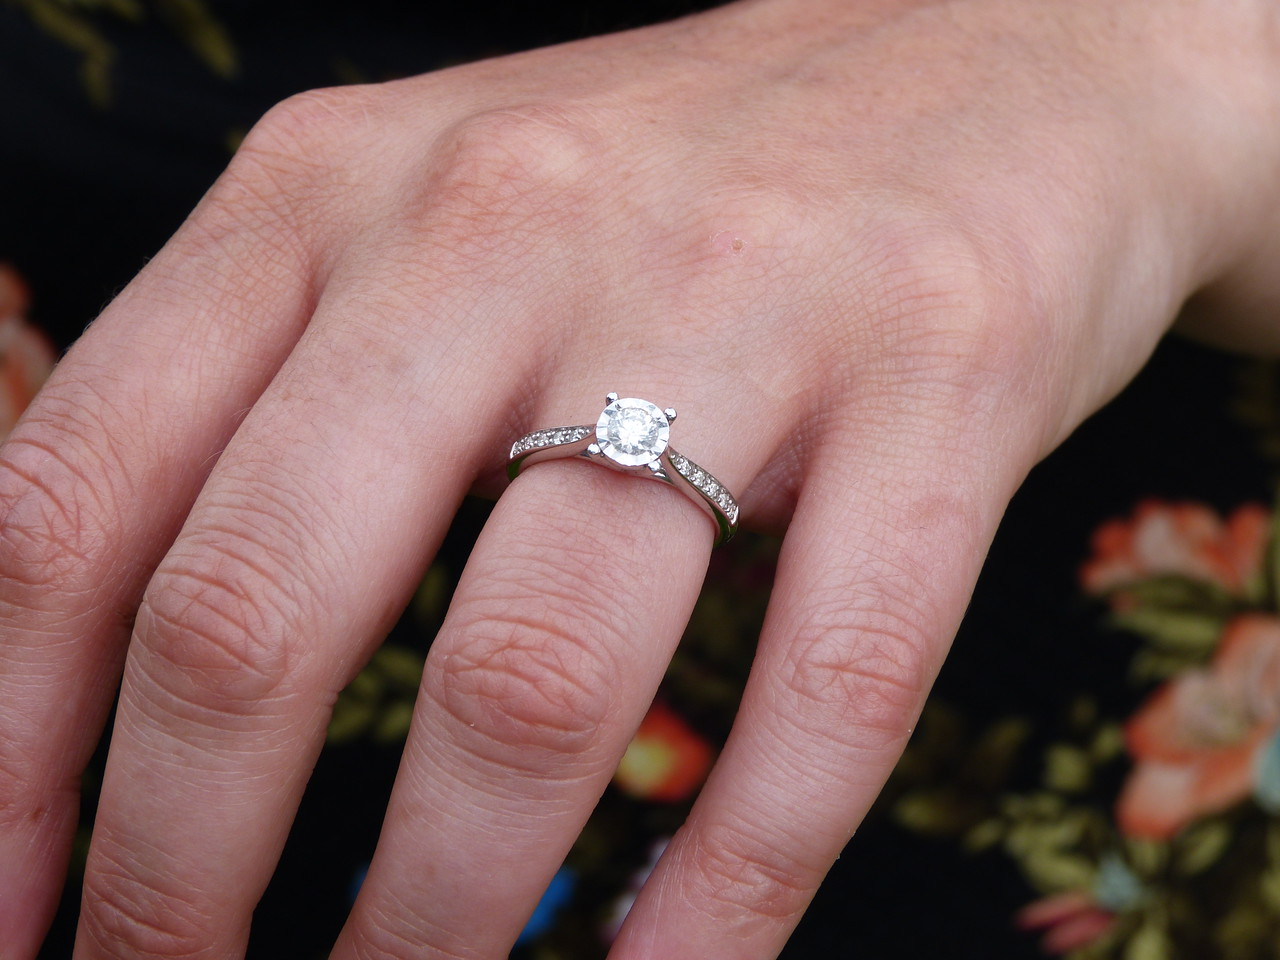 Victoria's engagement ring - beautiful!